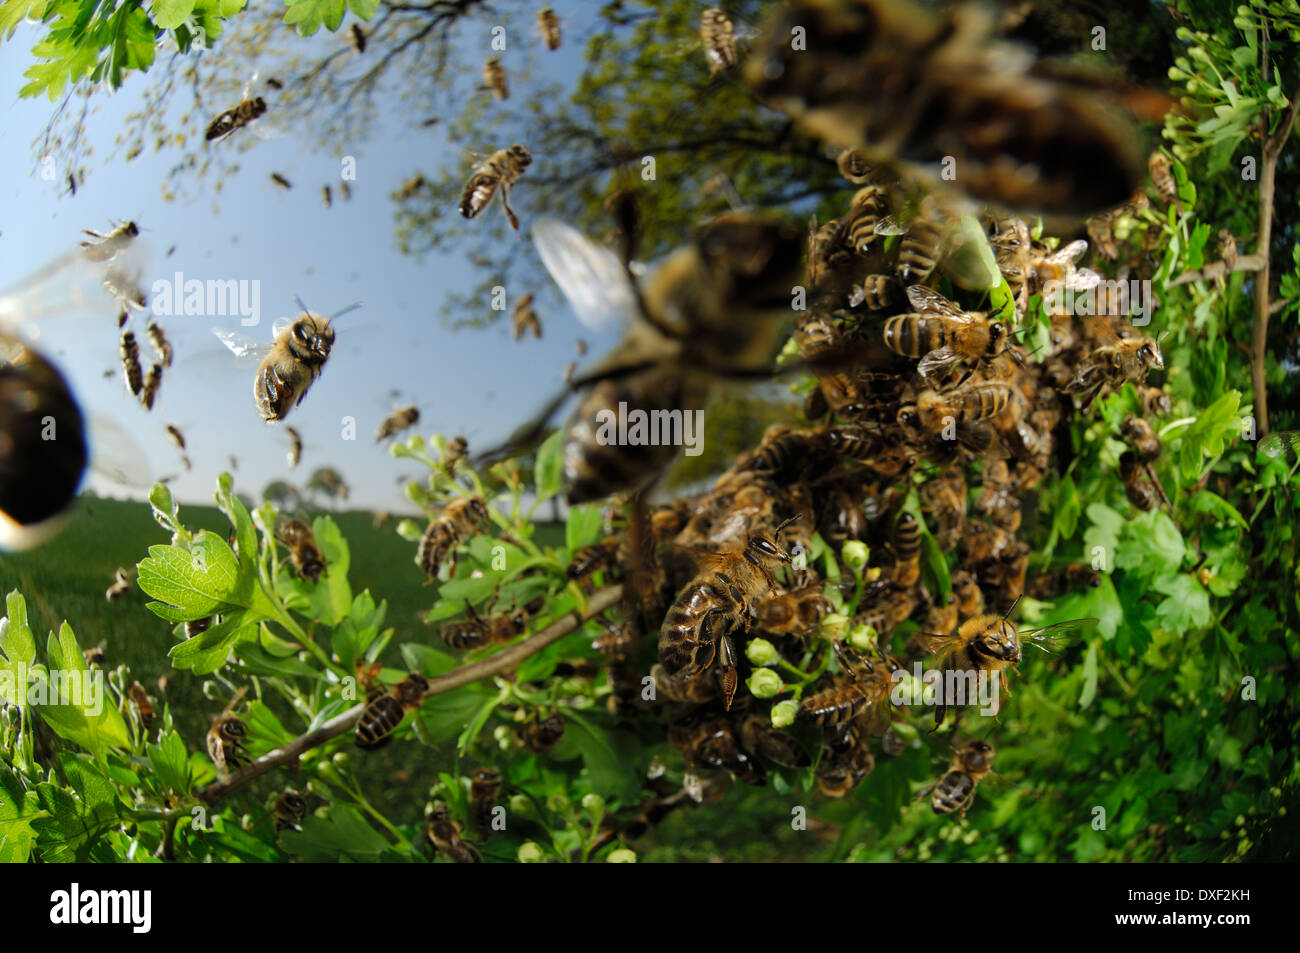 Honey bee (Apis mellifera) swarm - Stock Image